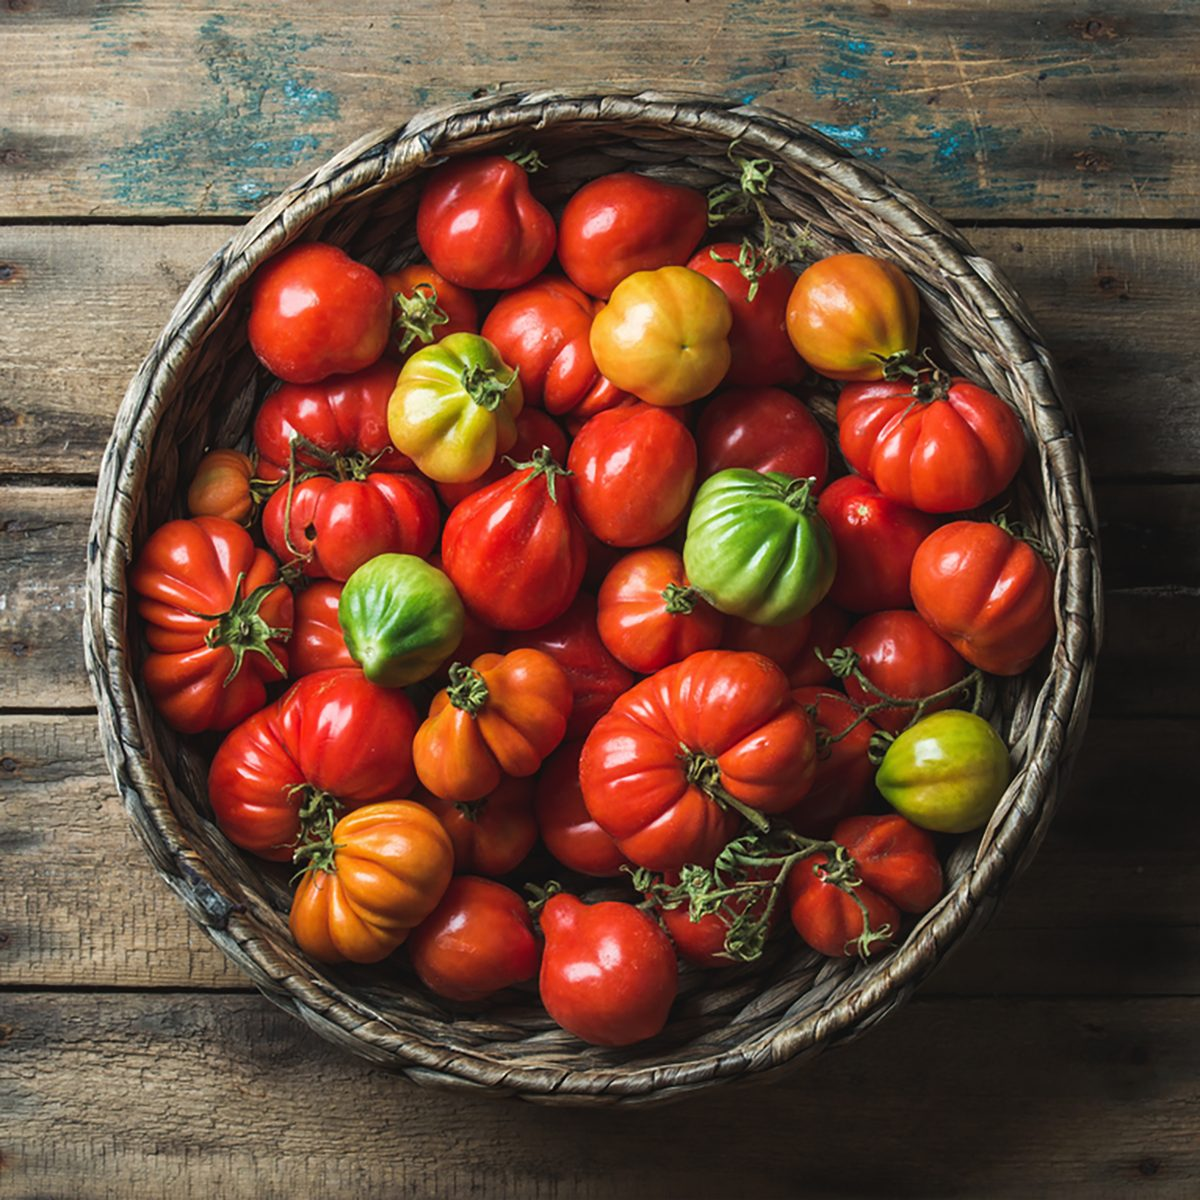 Fresh colorful ripe heirloom tomatoes in basket over wooden background